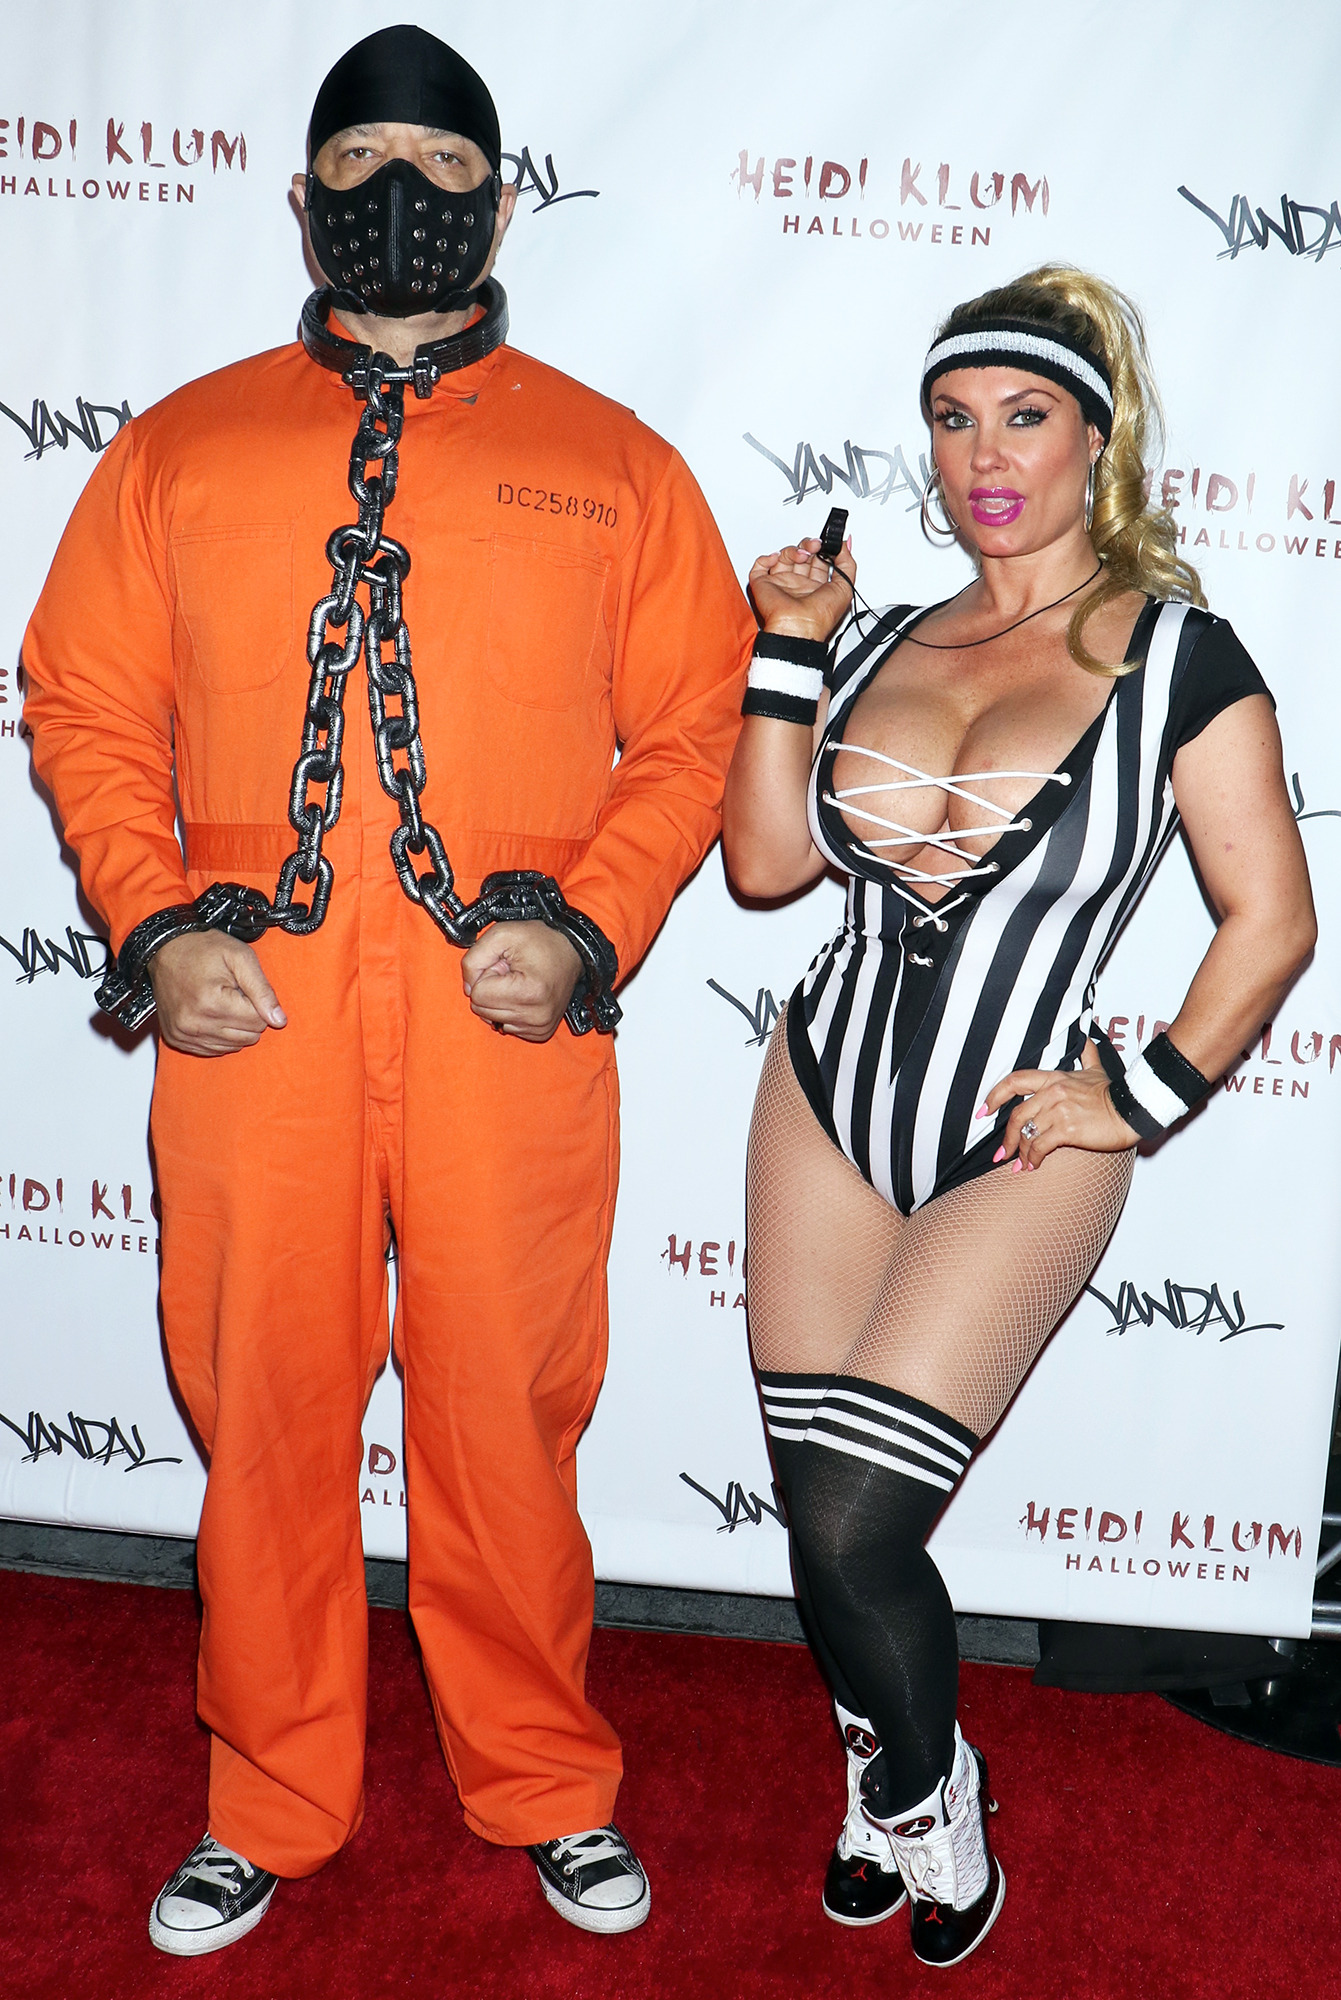 Coco Austin Halloween Costume 2020 Coco Austin and Ice T Don't Coordinate on Halloween: Here's Why